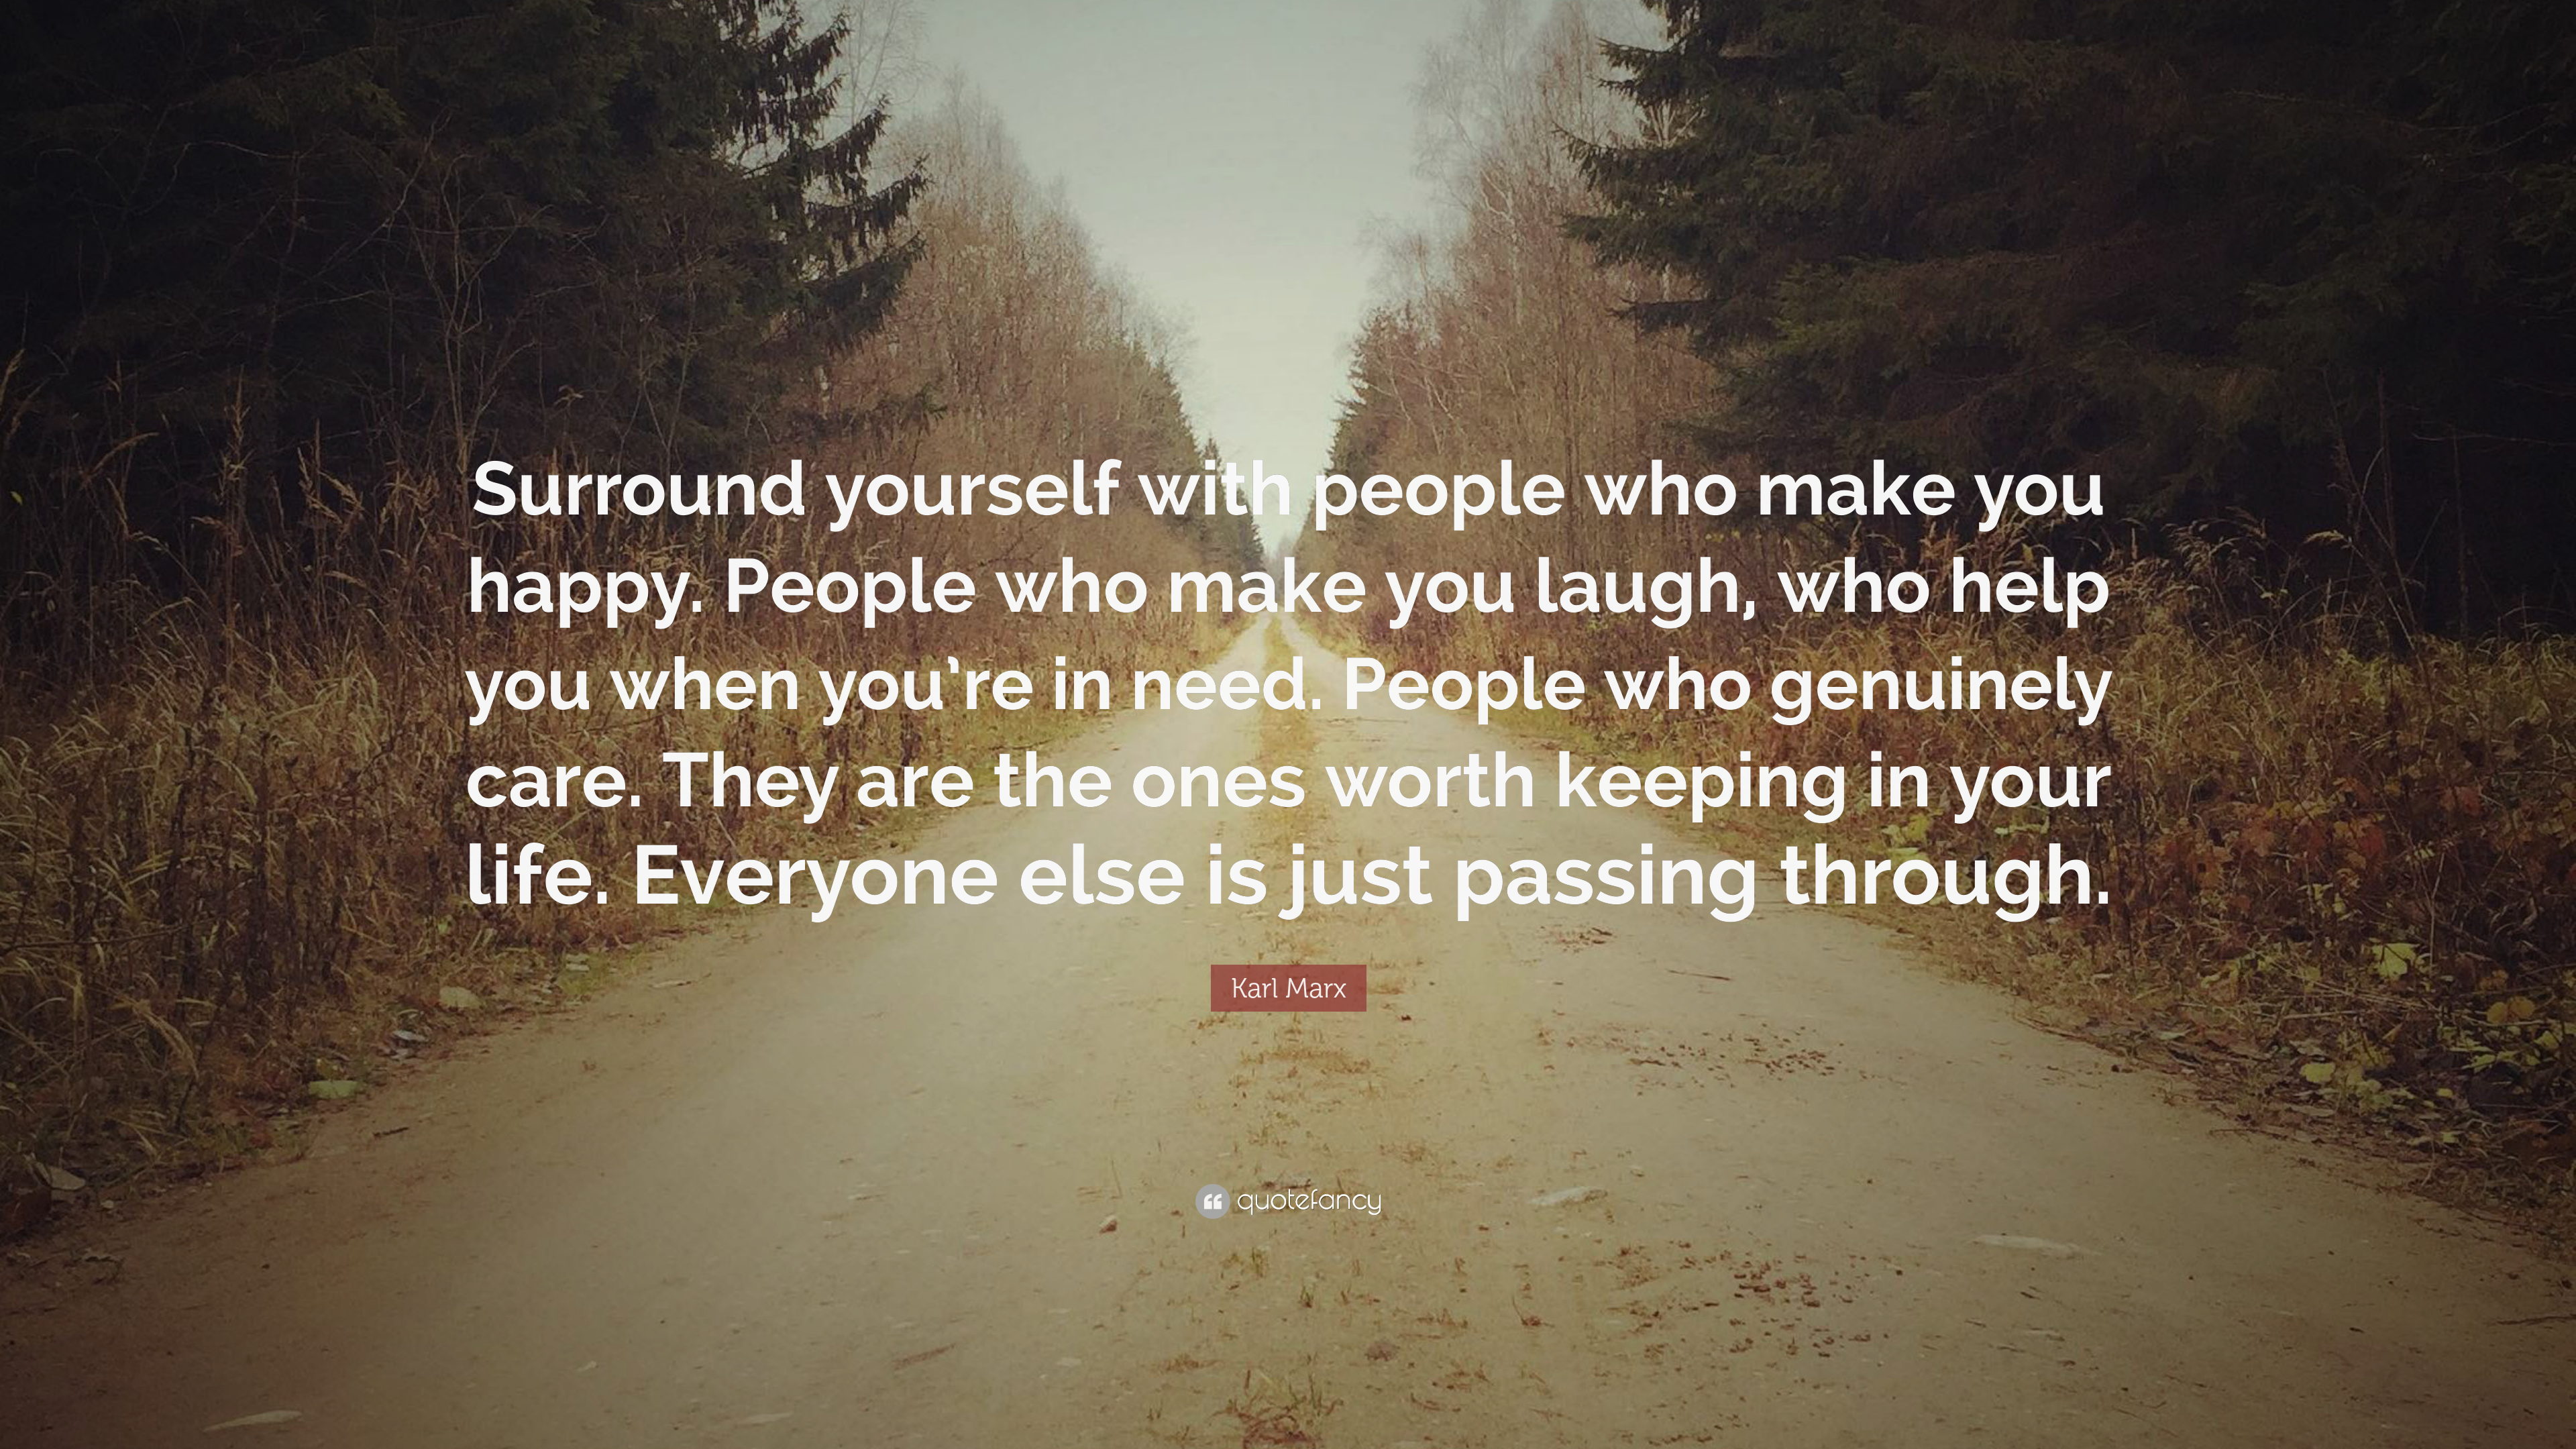 Karl Marx Quote Surround Yourself With People Who Make You Happy